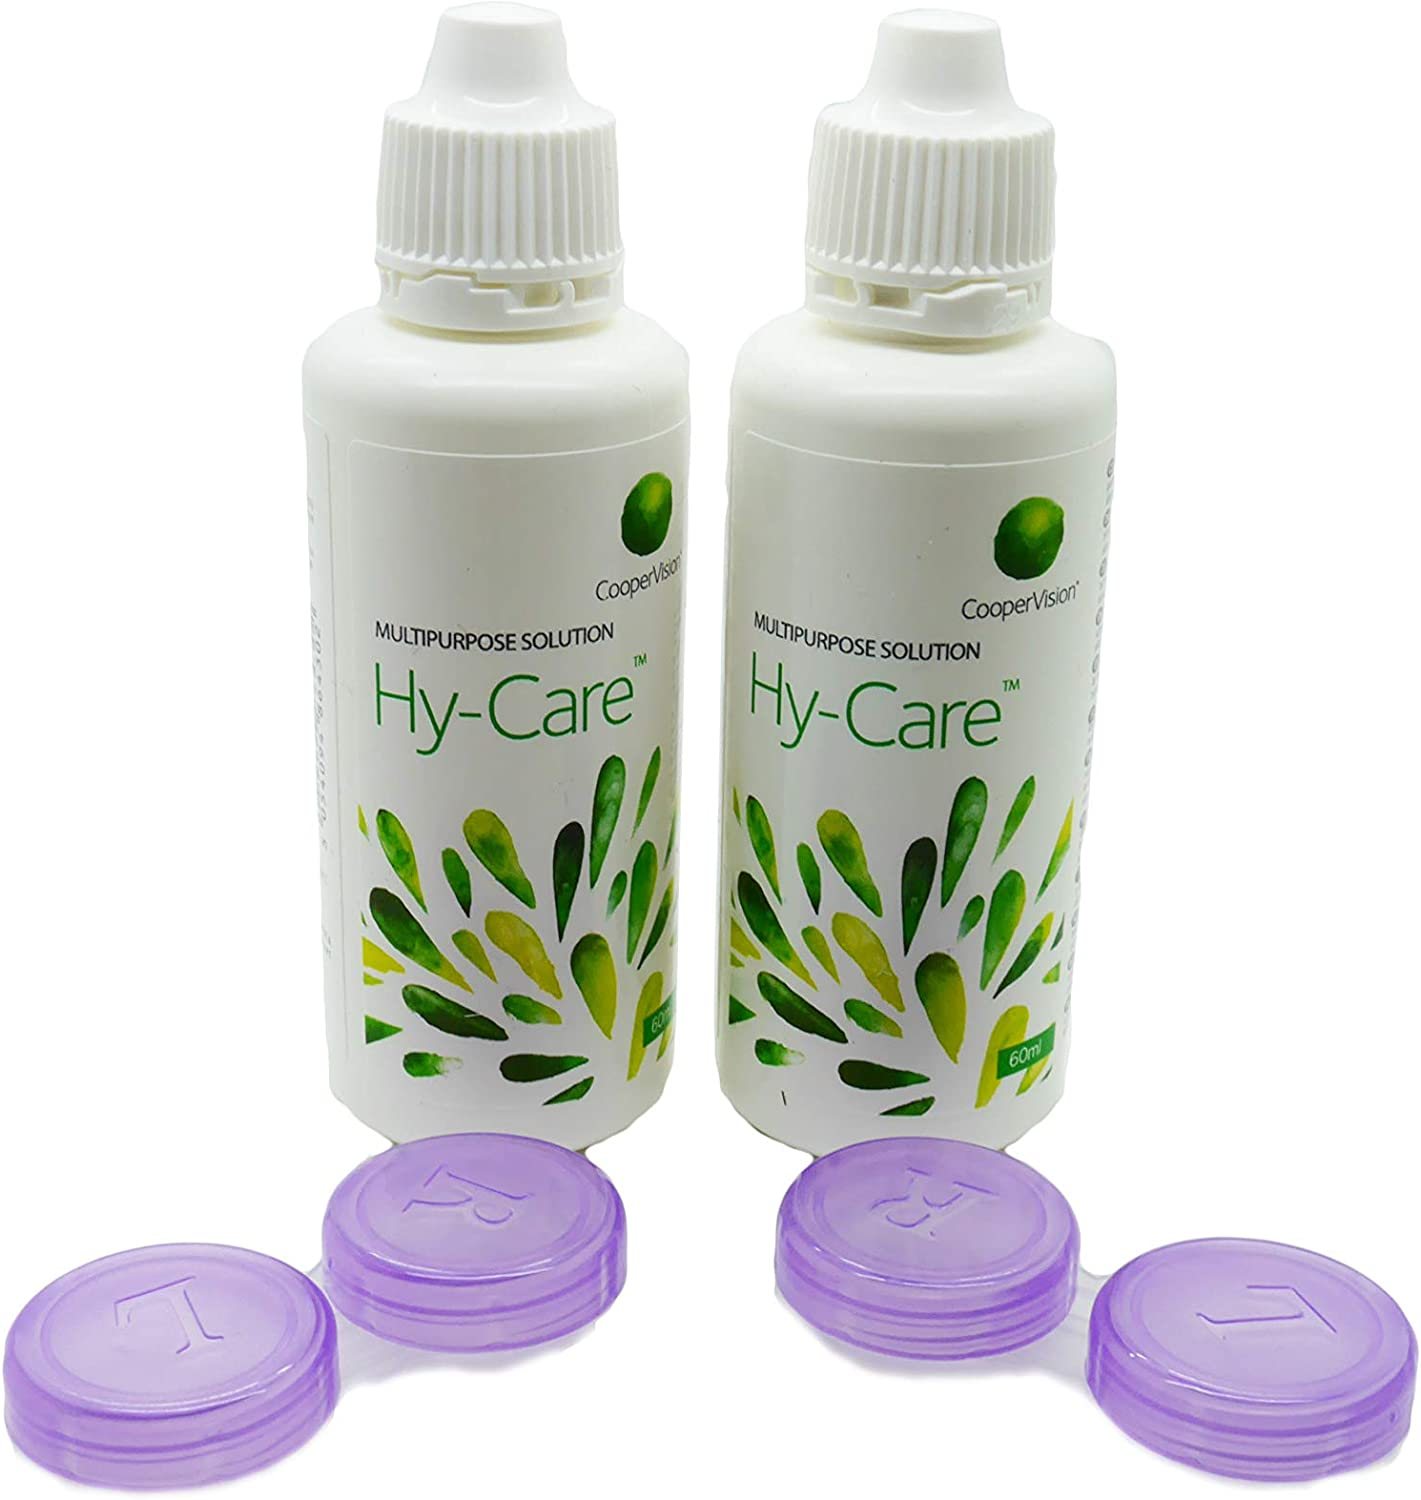 Hy Care Multipurpose Contact Lens Solution 2 X 60ml Travel Amazon Co Uk Health Personal Care